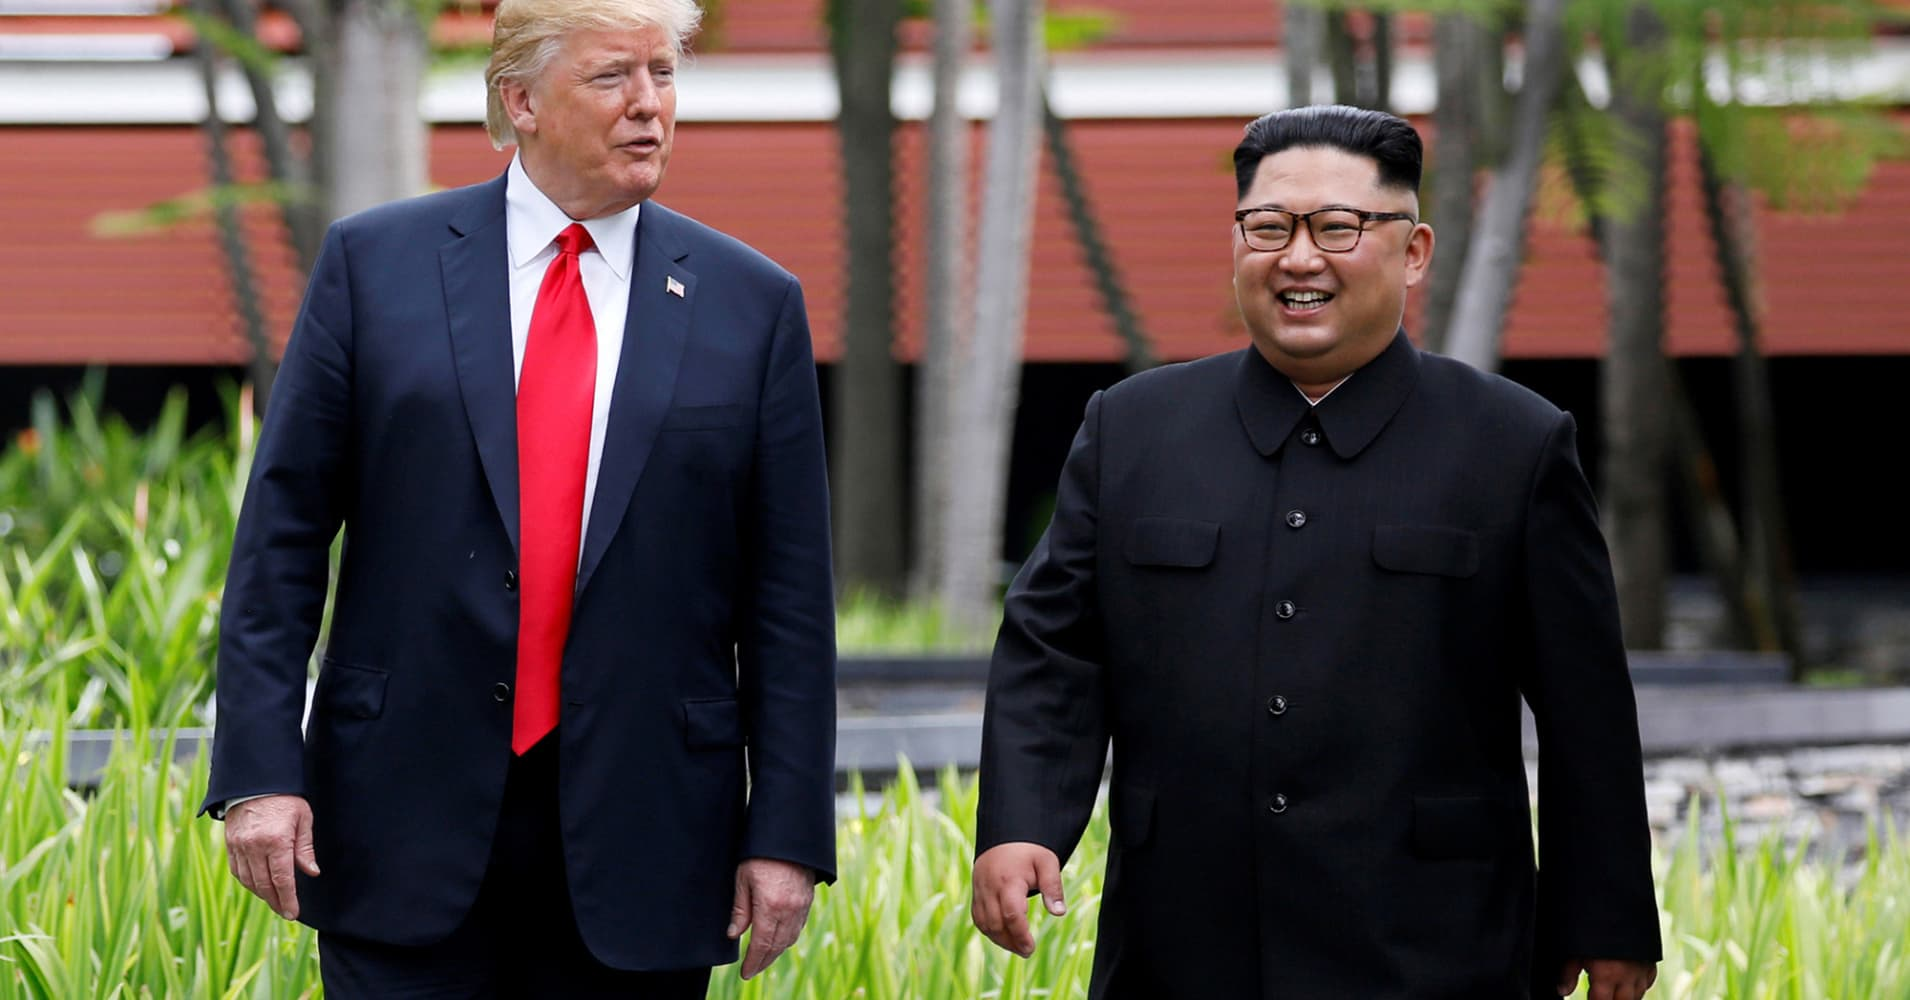 Another Trump-Kim summit may be good for diplomacy, but not so much for denuclearization